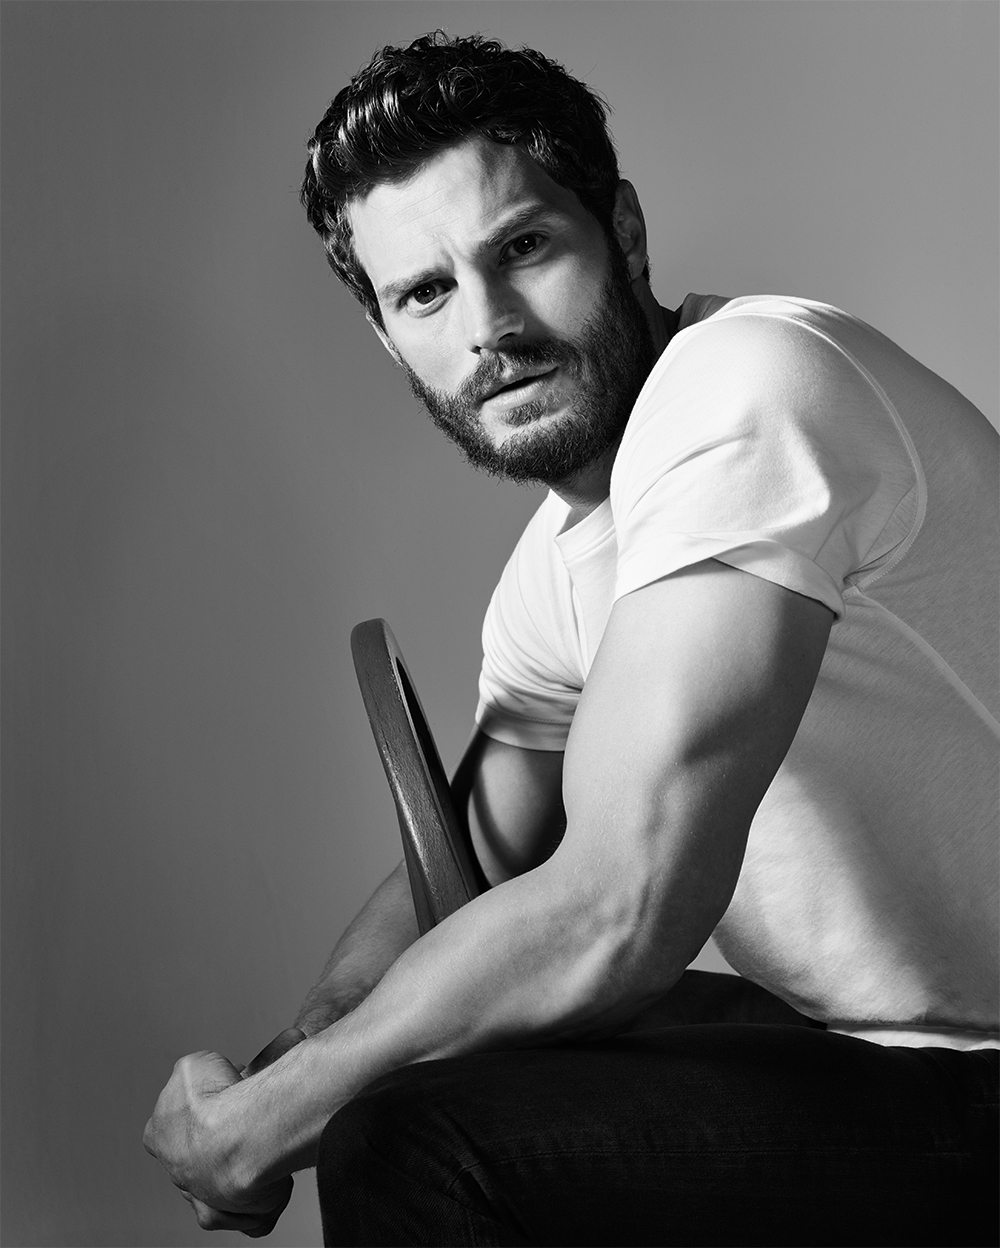 jamie dornan 39 fifty shades of grey 39 profile. Black Bedroom Furniture Sets. Home Design Ideas